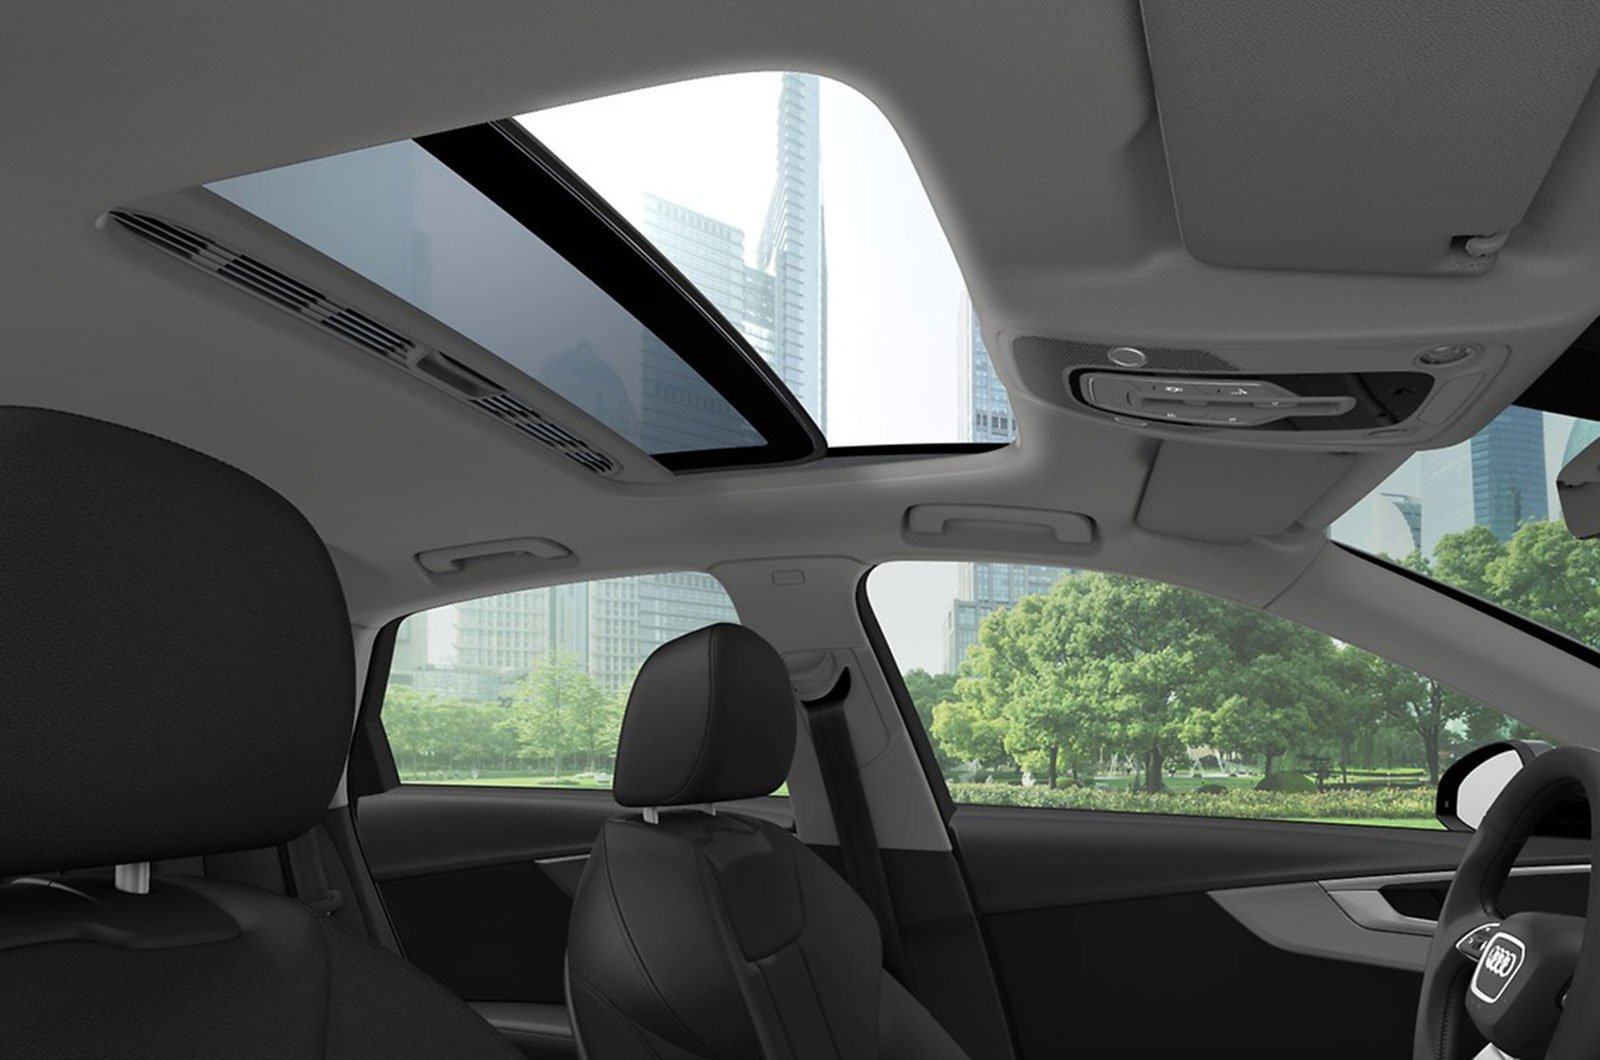 Audi A4 sunroof